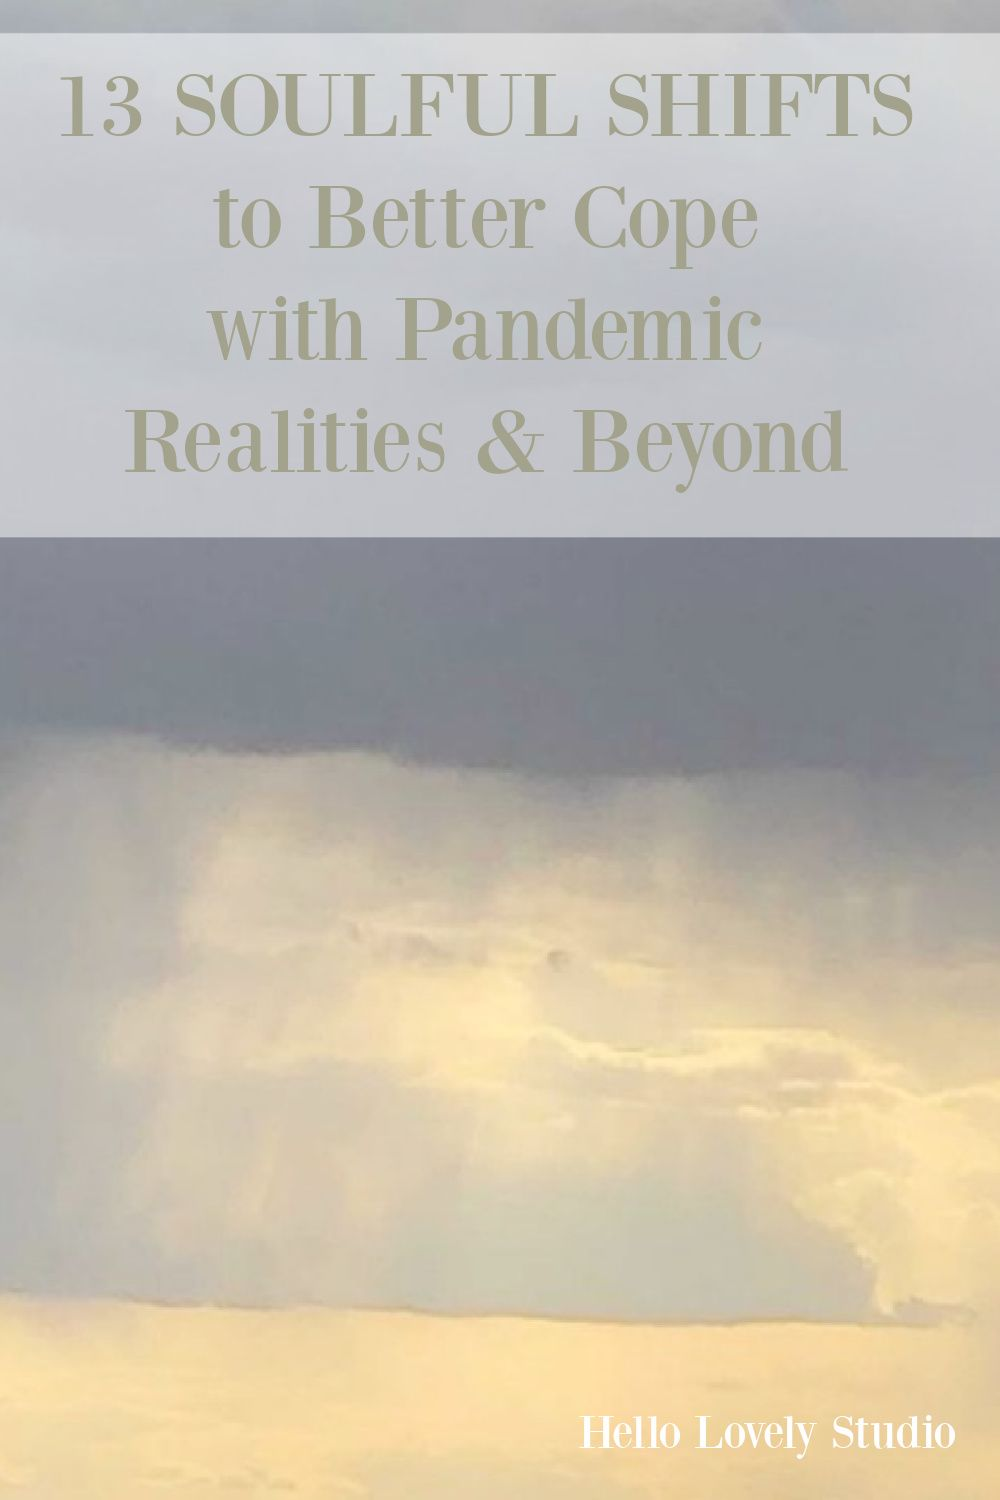 13 Soulful Shifts to Better Cope With Pandemic Realities - Hello Lovely